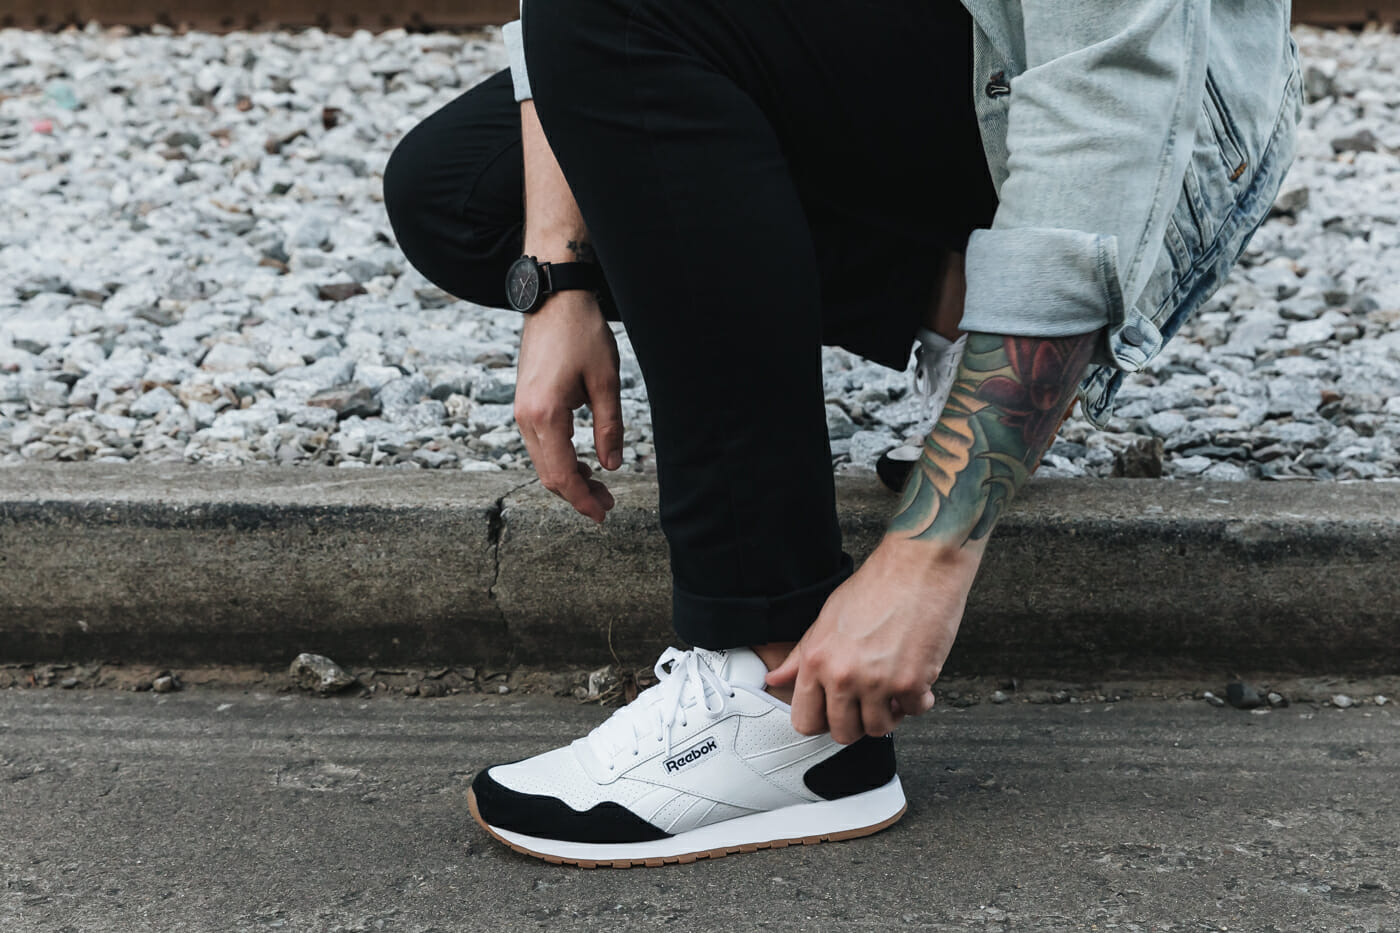 Fall Casual Weekend Out with Reebok Classic Harmon Sneakers from DSW